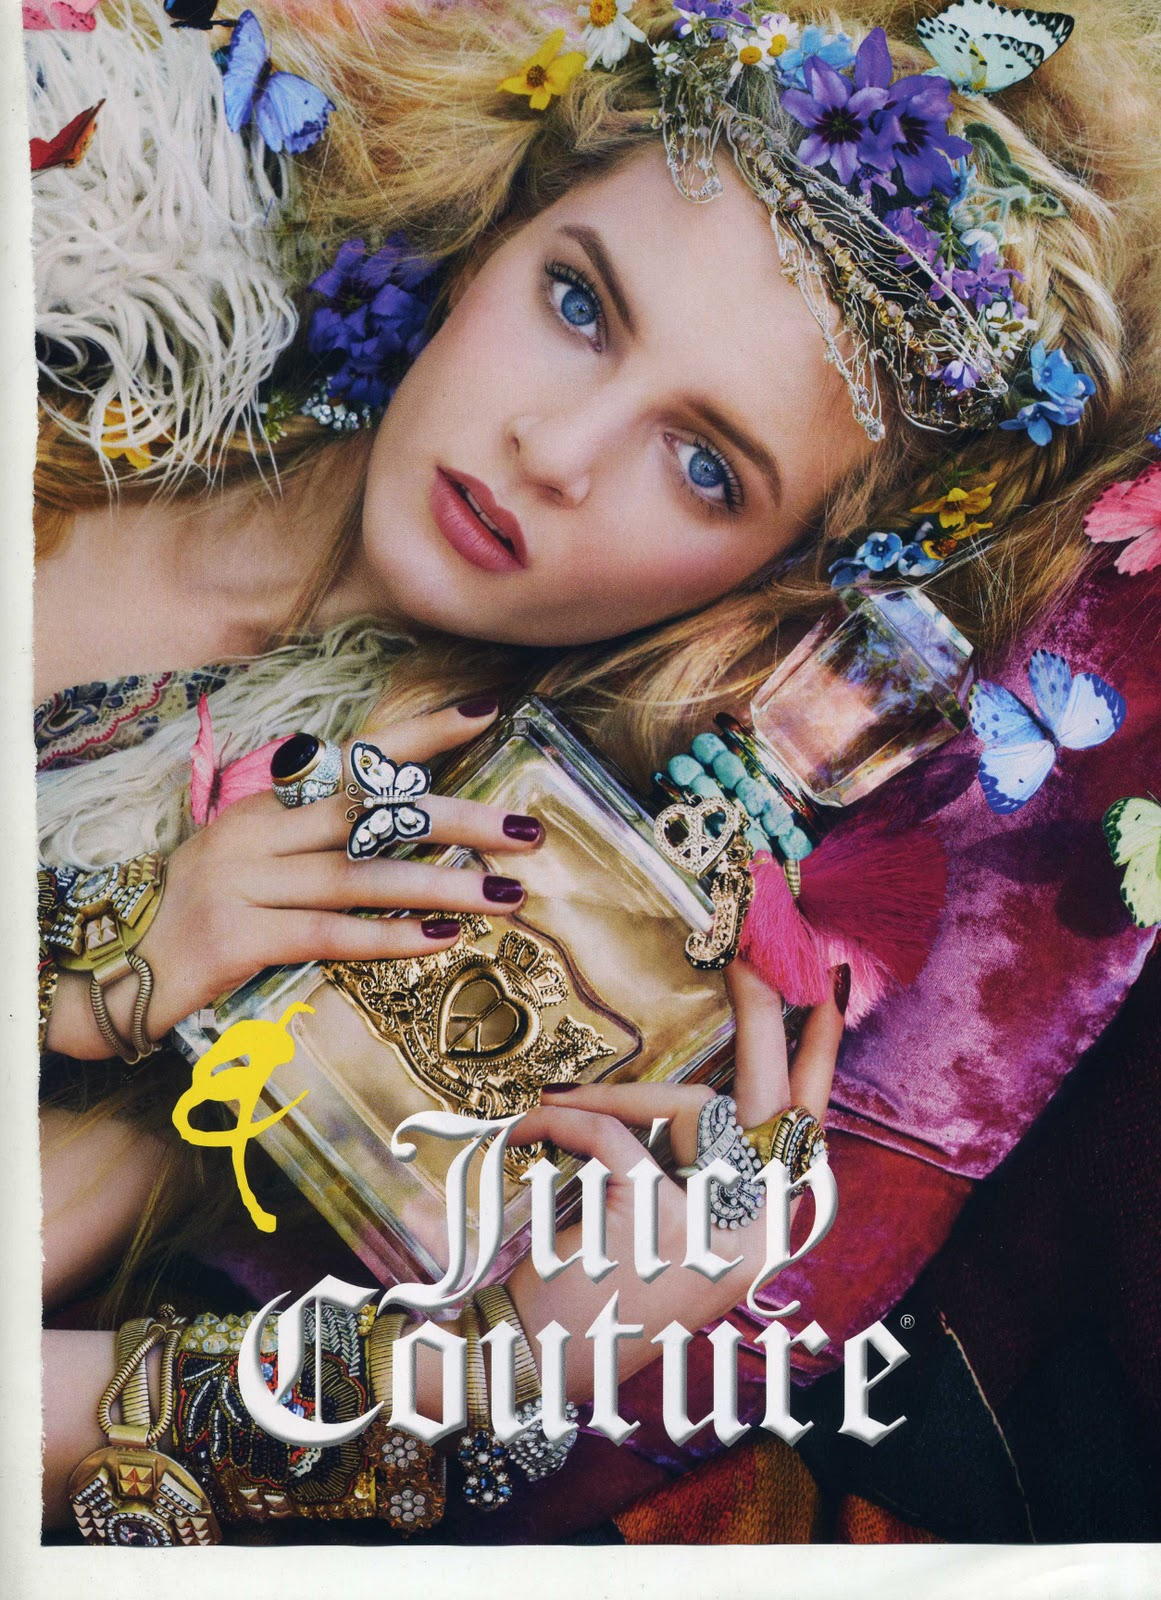 Juicy Couture Ad Campaigns   How to be lovely